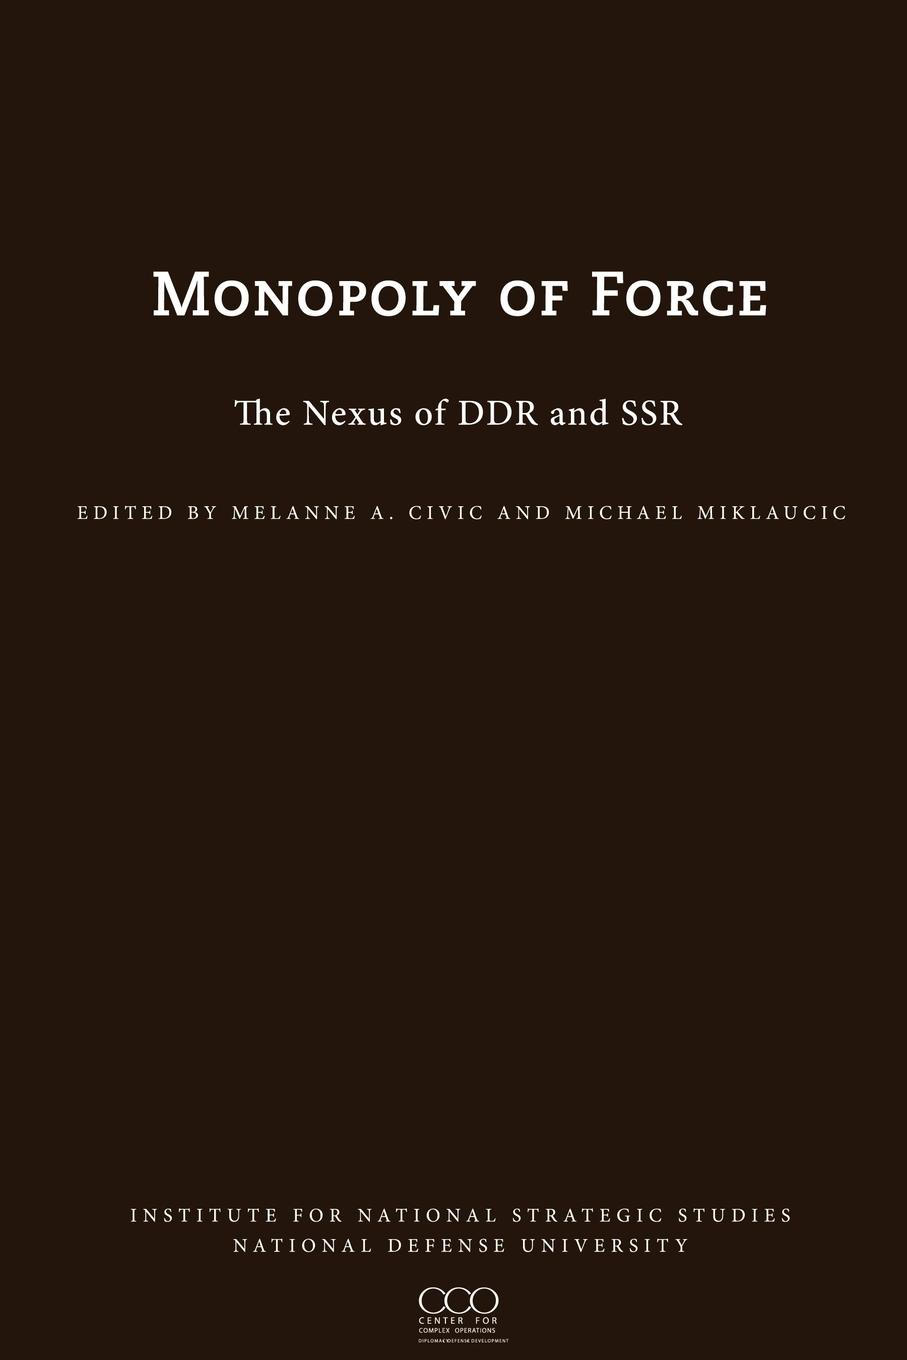 James N. Mattis The Monopoly of Force. The Nexus of DDR and SSR ssr 25dd solid state relay